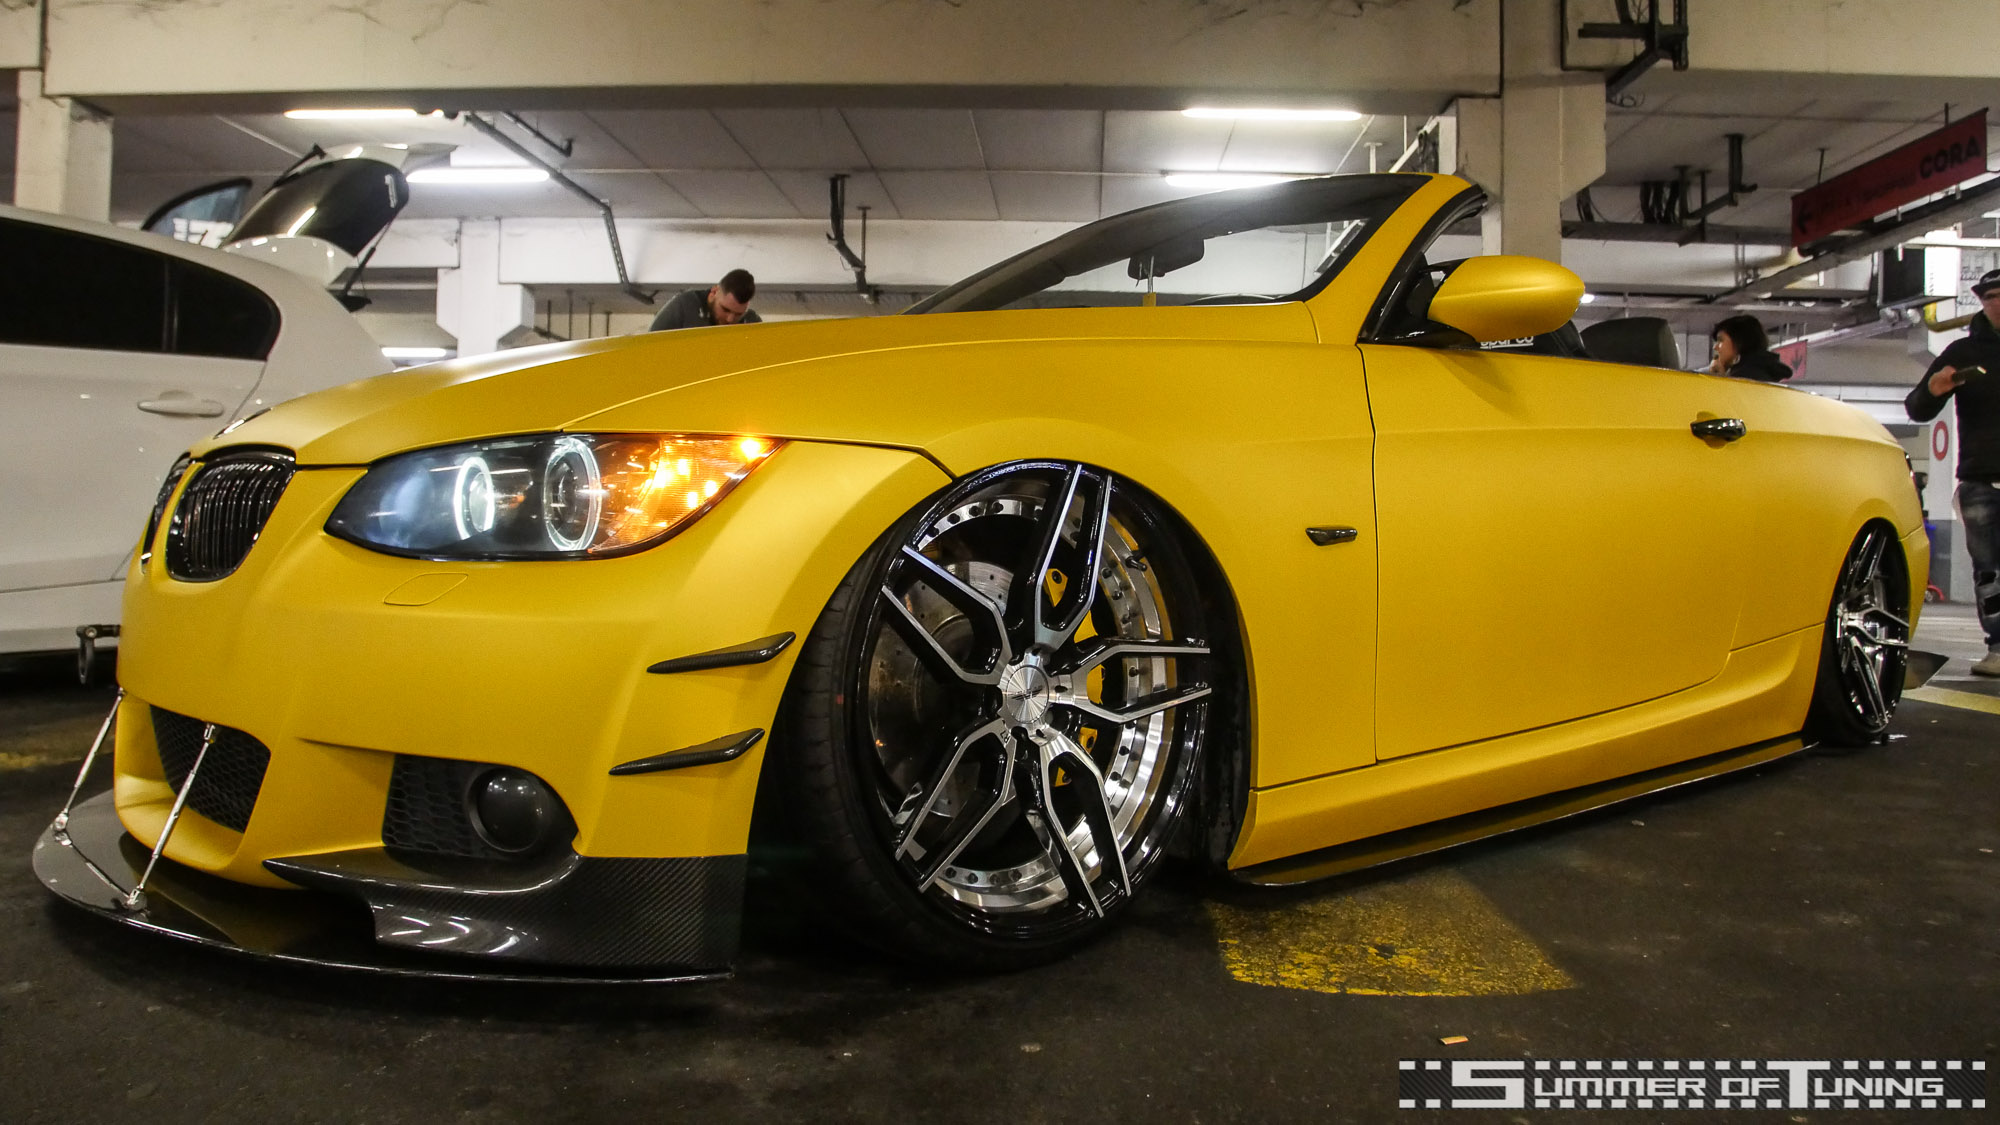 BMW Cabriolet, Bimmer, Bagged, Airride, Prior Design, Akrapovic, Tuning, HoW14